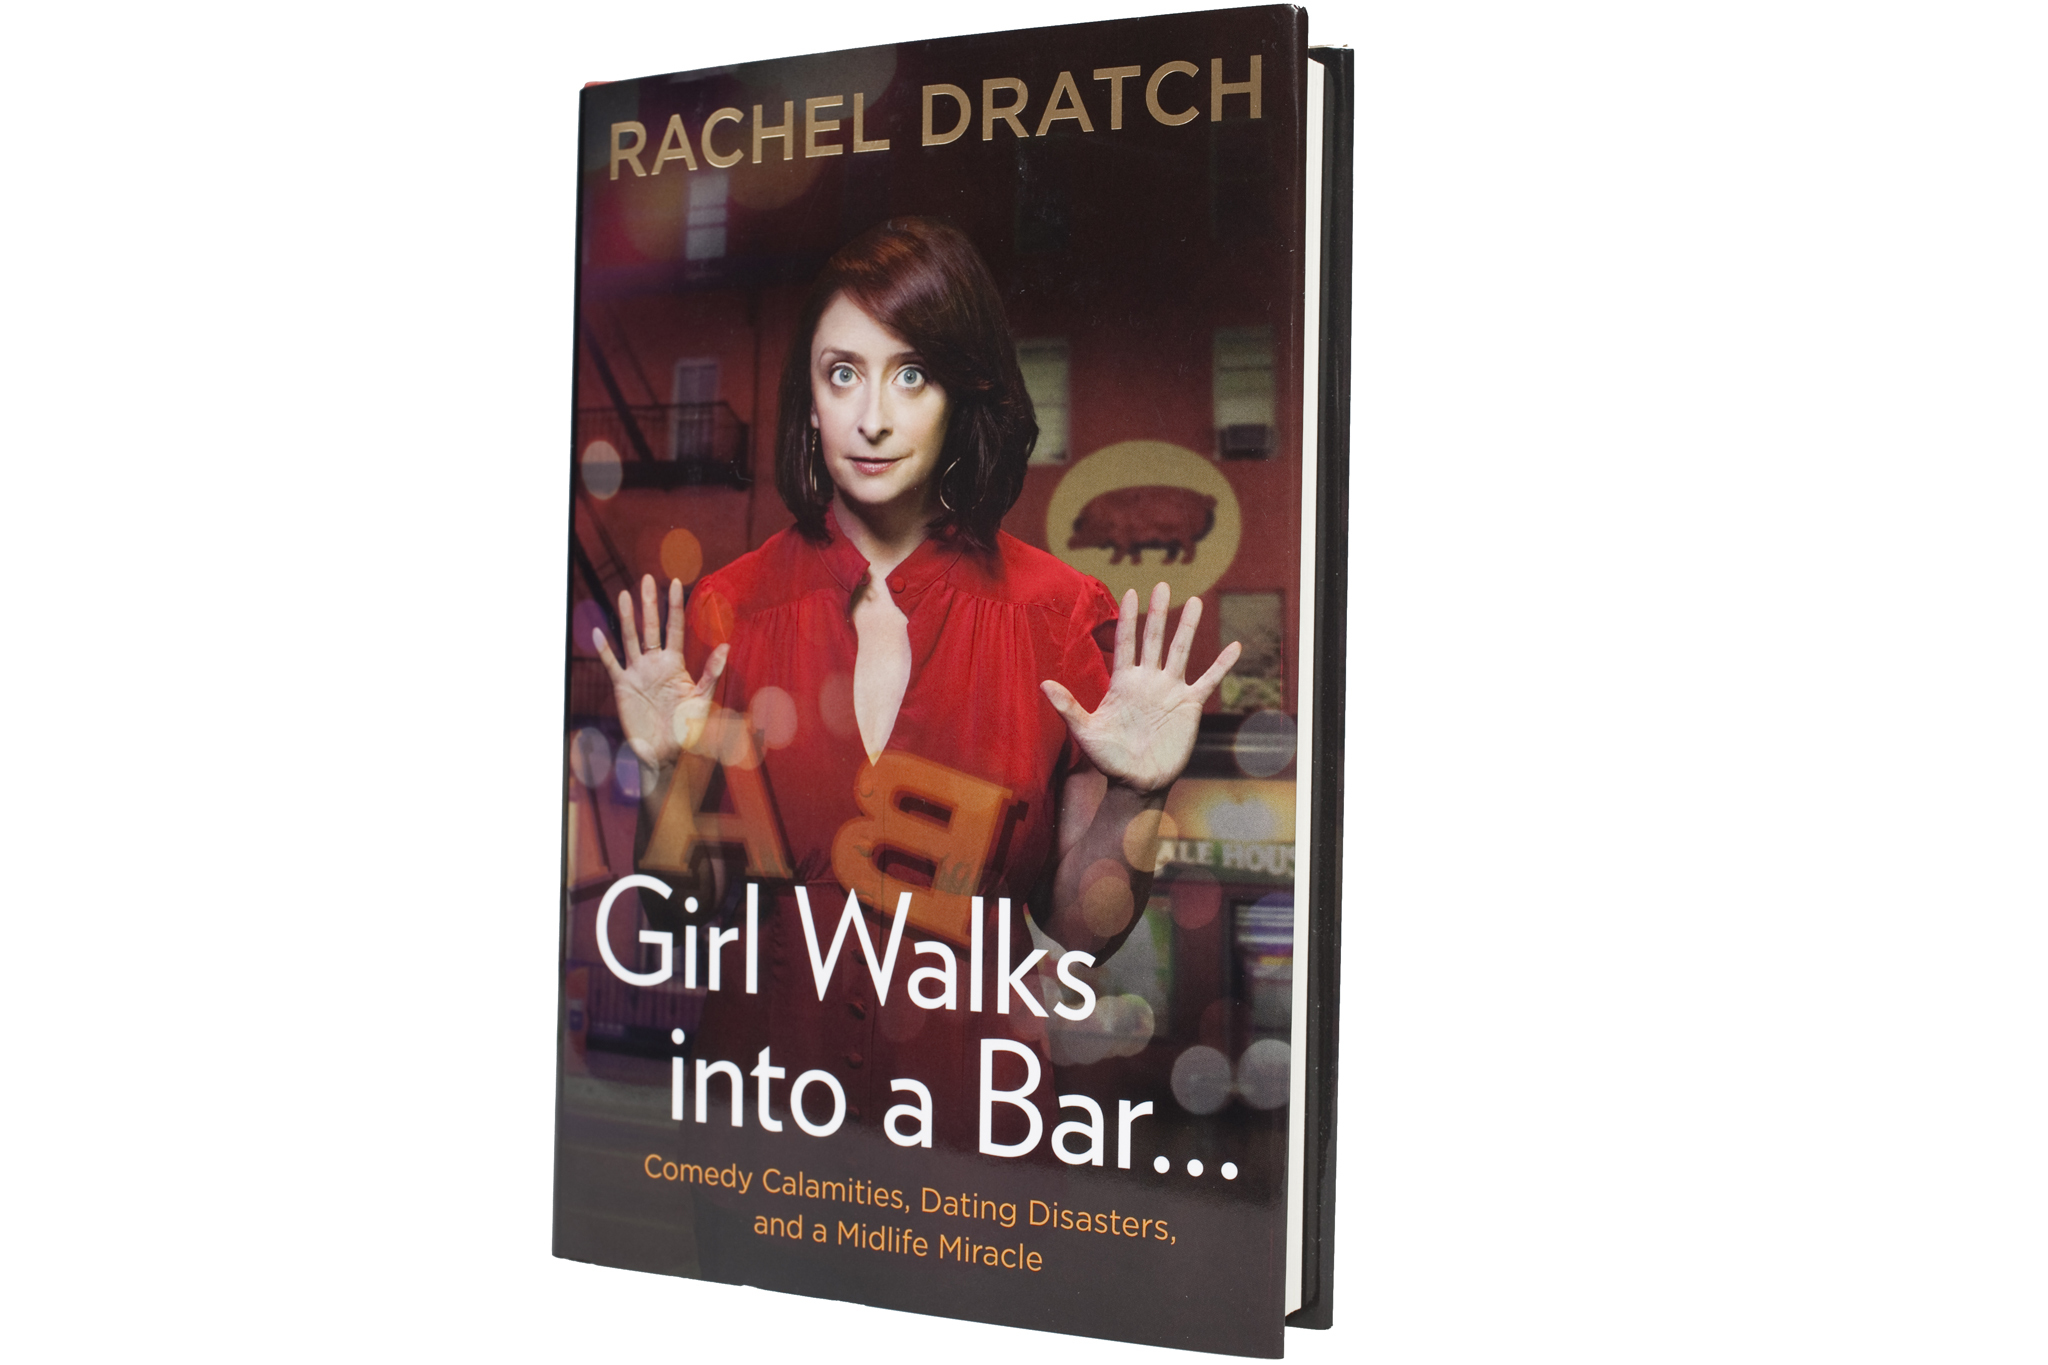 Girl Walks Into a Bar… by Rachel Dratch (Gotham Books, $26) Reviewed by Elaine Dratch